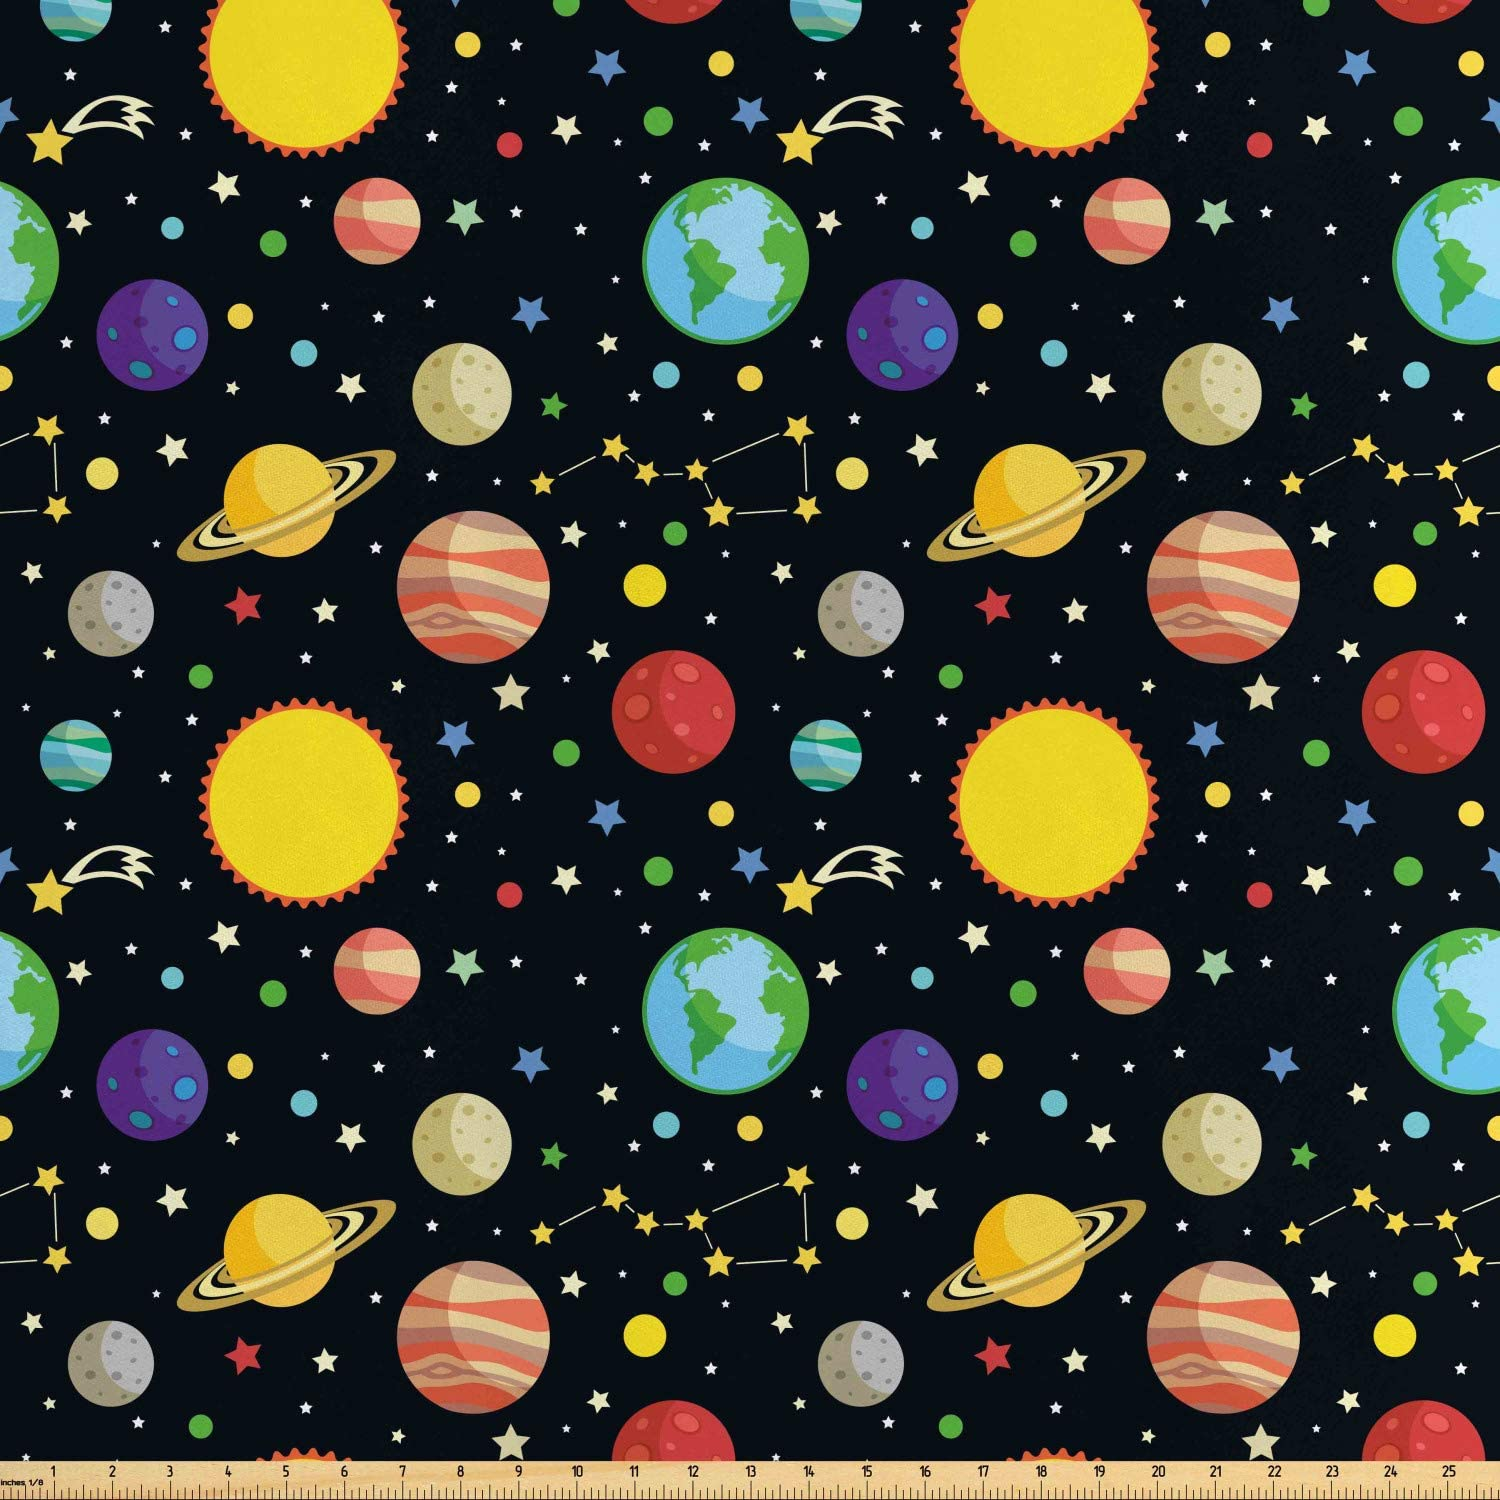 Ambesonne Space Fabric by The Yard, Comets and Constellations Stars with Polka Dots Earth Sun Saturn Mars Solar System, Decorative Satin Fabric for Home Textiles and Crafts, Multicolor